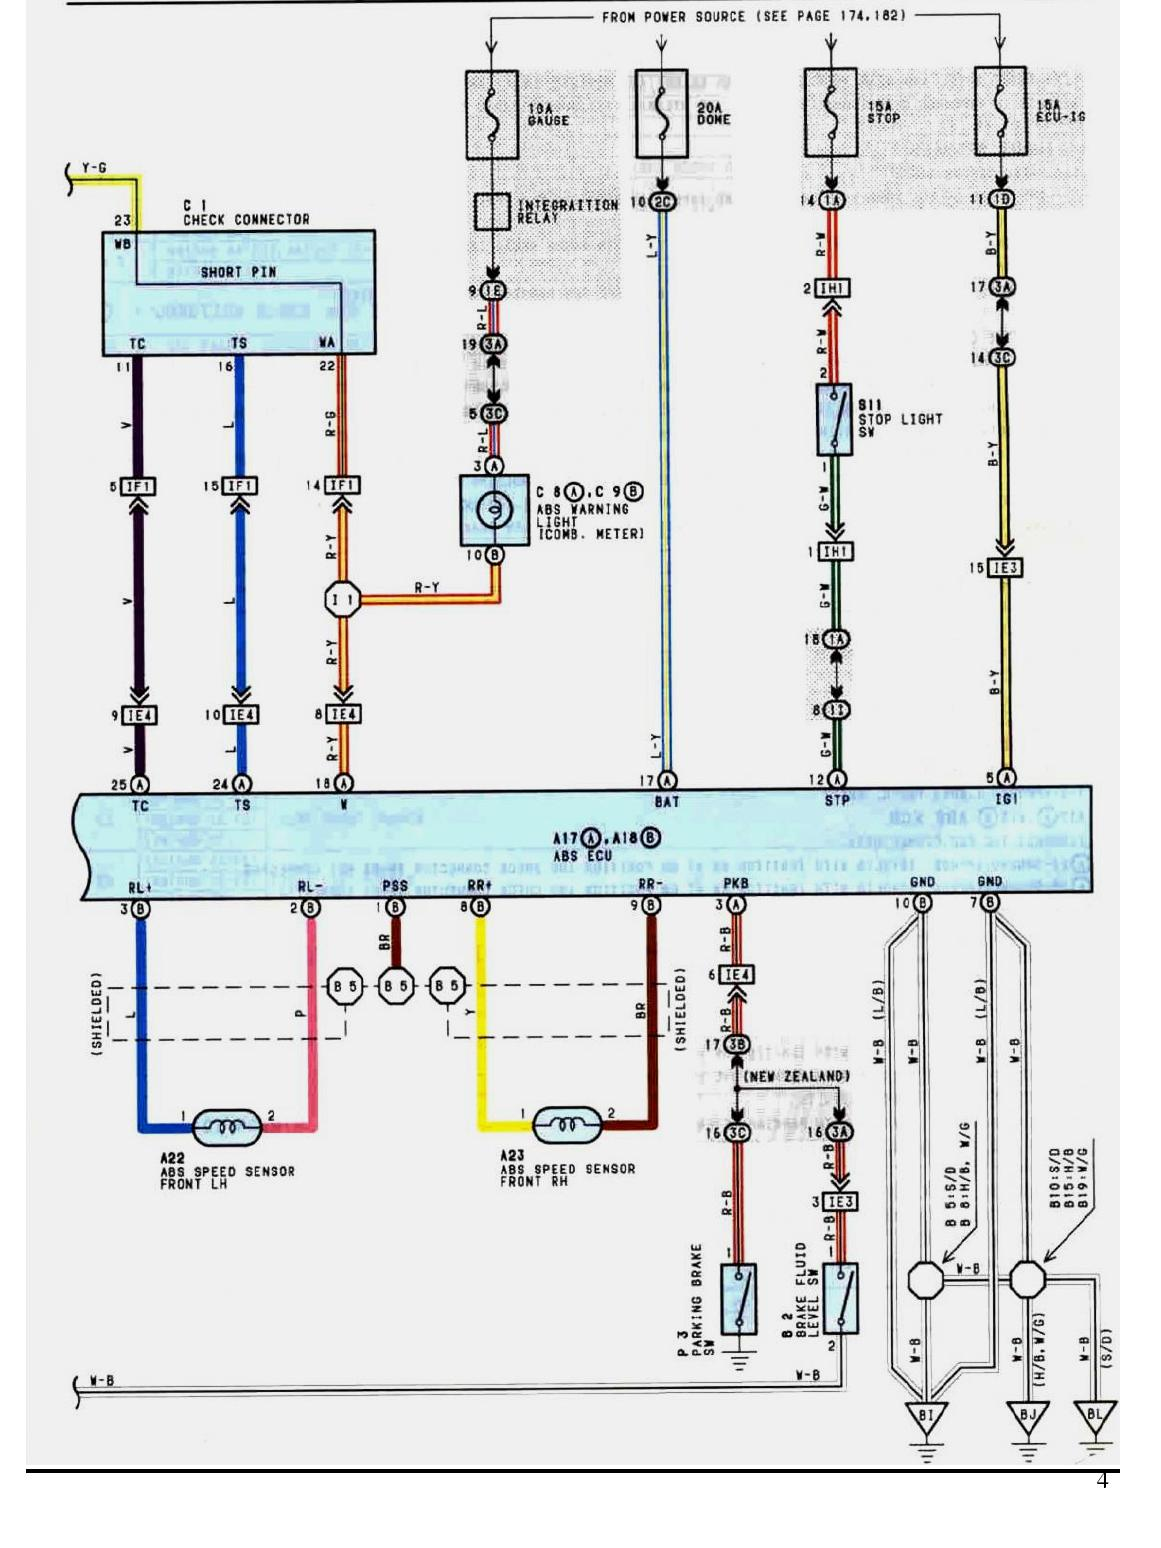 Rover 75 Abs Wiring Diagram - Product Wiring Diagrams •